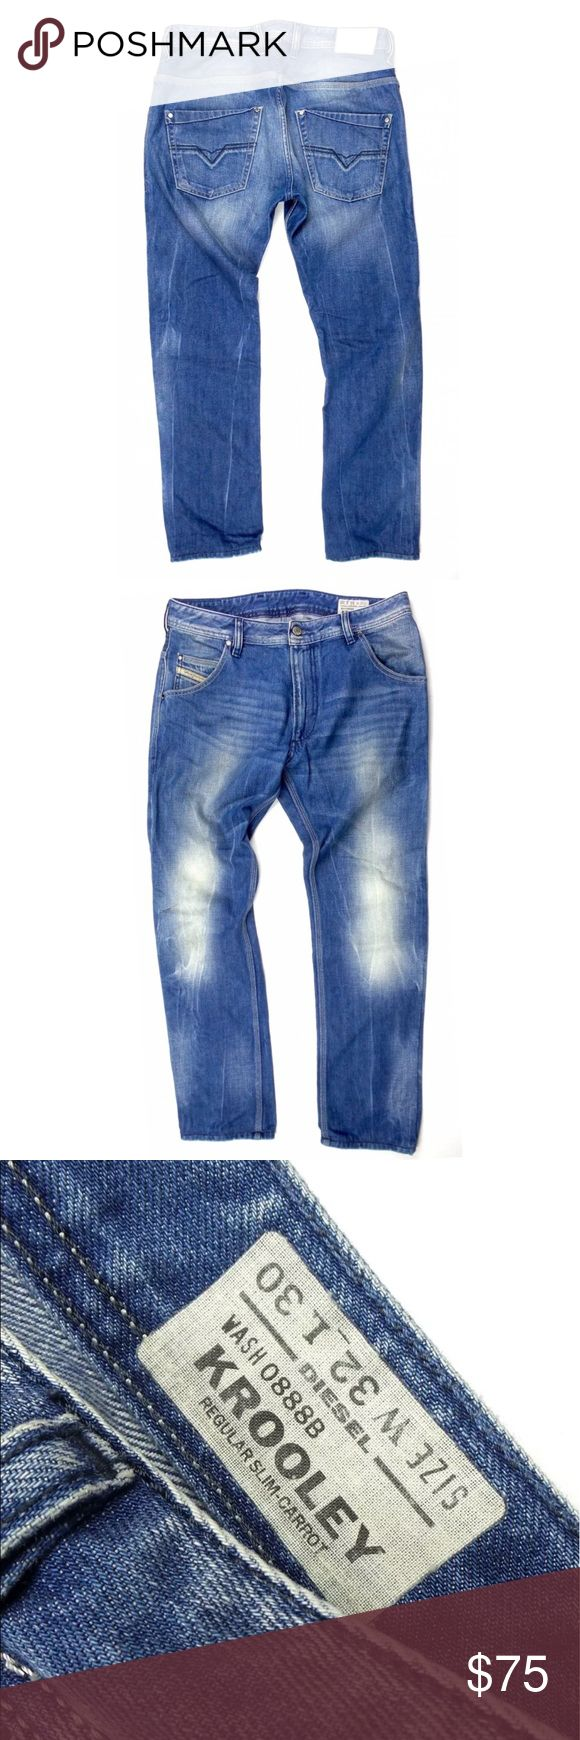 Diesel Denim Regular Slim Carrot Jeans Wash 0888B Men's Diesel Denim Regular Slim Carrot Jeans Wash 0888B Size 32  CONDITION:  Excellent. (See photos)  SIZE AND MEASUREMENTS: (lying flat):  Marked Size: 32 Outseam is 39.5 in.  Inseam is 29.5 in.  Waist (Across Edge to Edge) is 16.5 in.   Items are sold per tagged size and measurements are listed as a guide only  B05 Diesel Jeans Slim